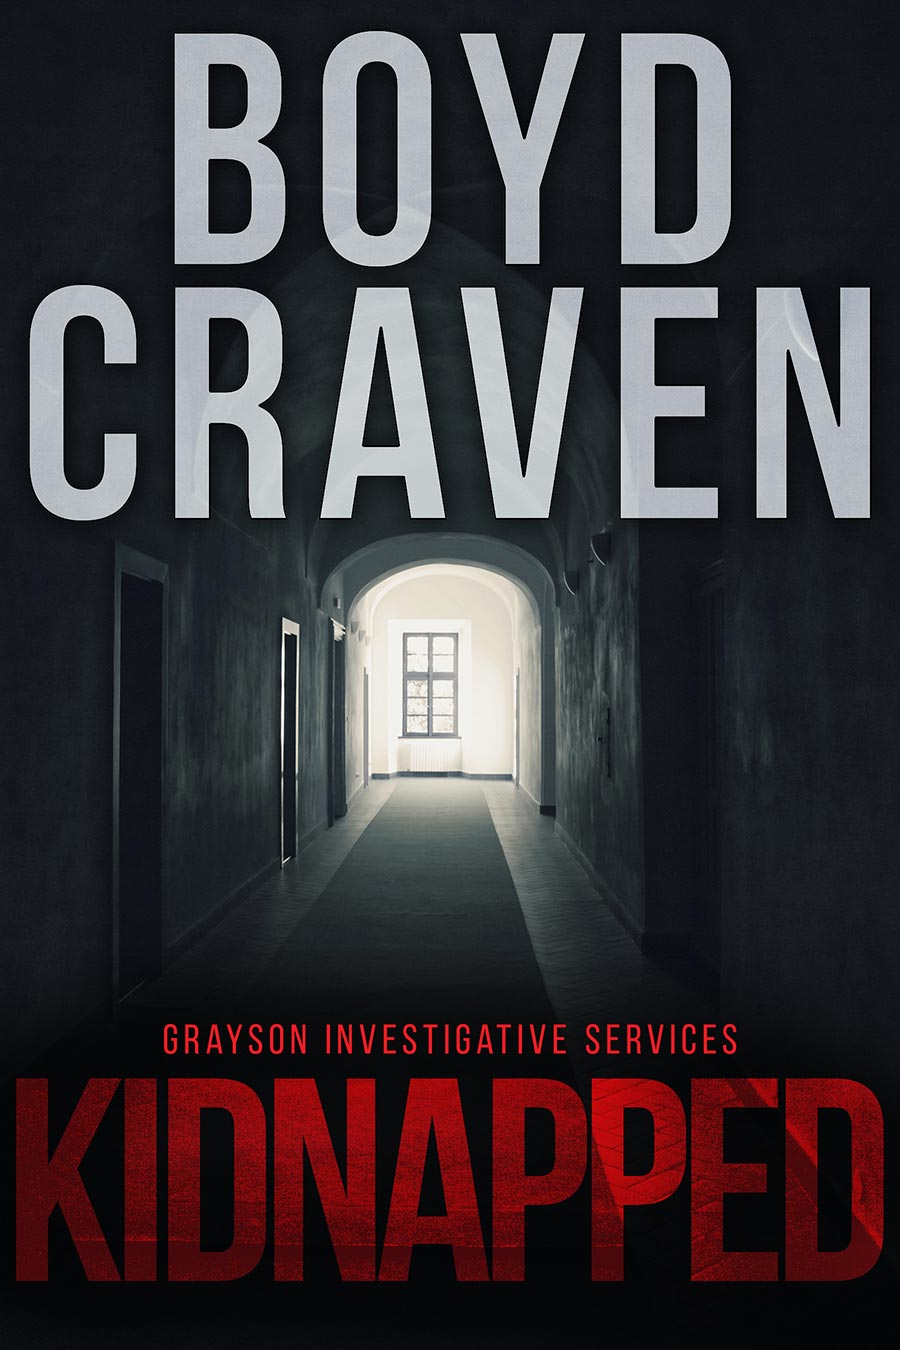 Boyd-Craven---Kidnapped---Draft-2.jpg